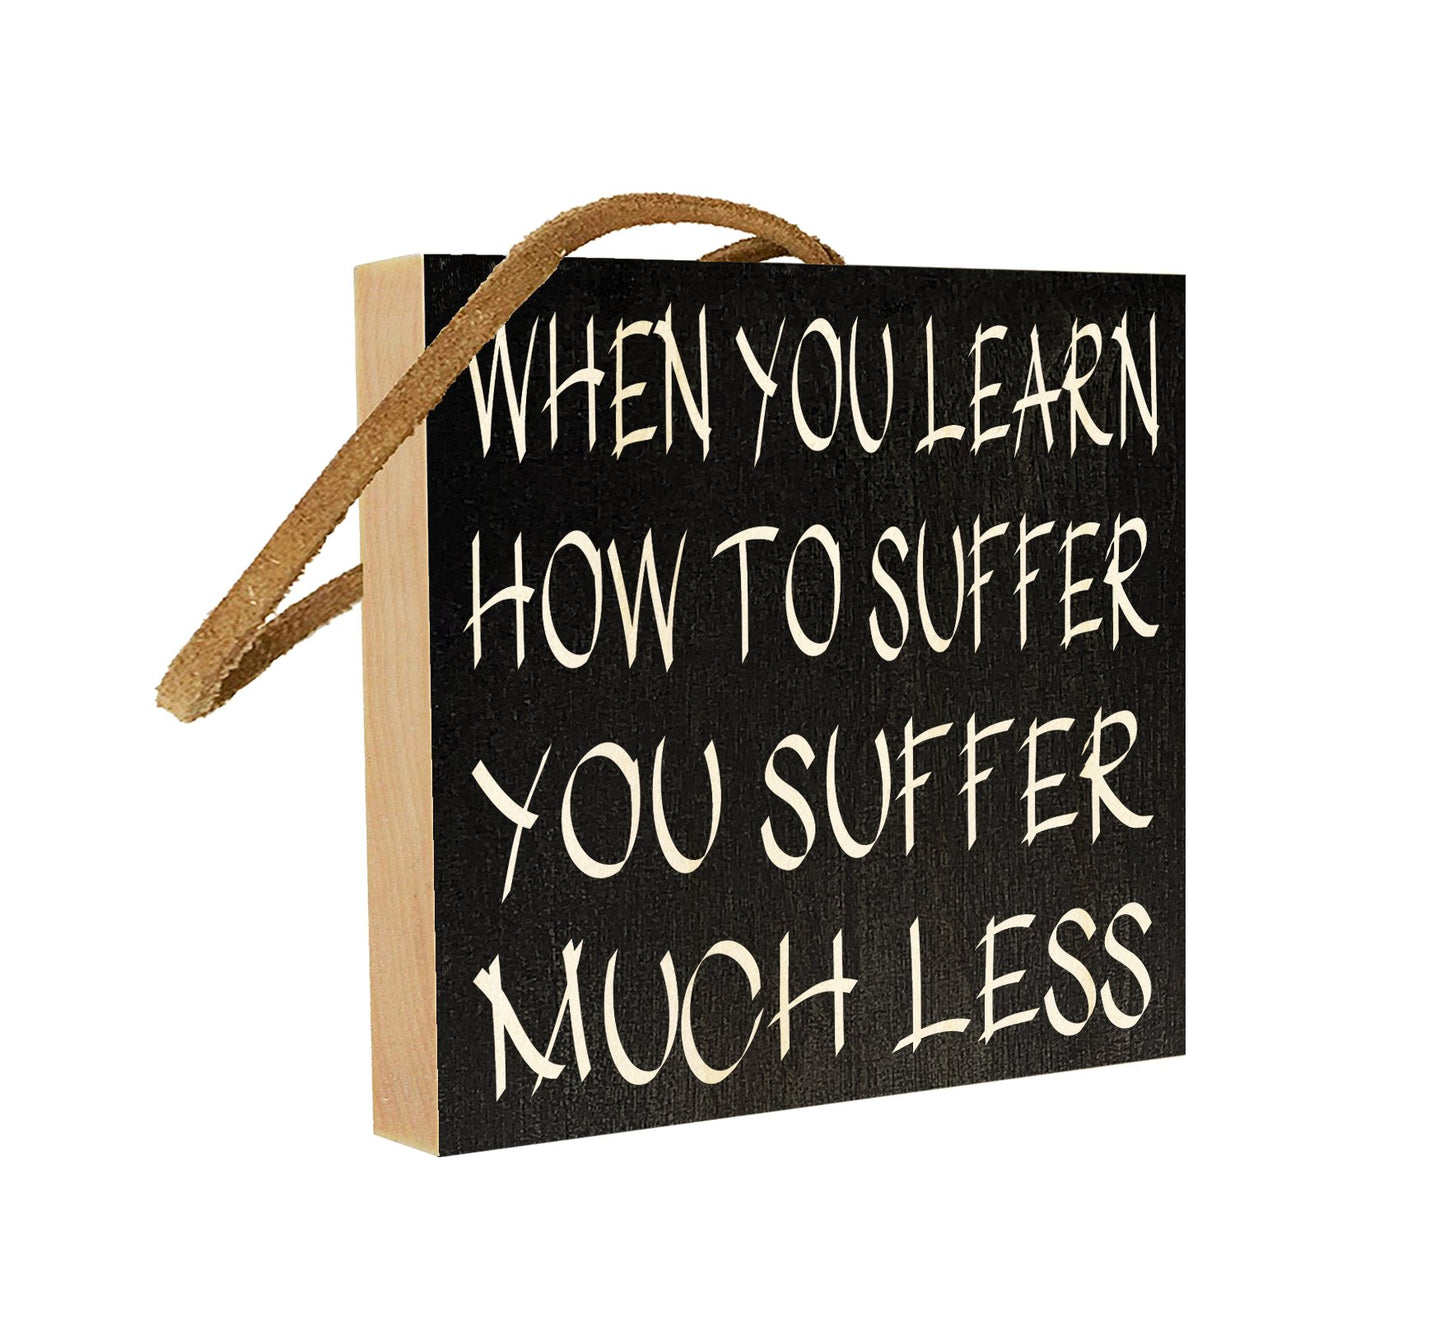 When You Learn How to Suffer, You Suffer Much Less.